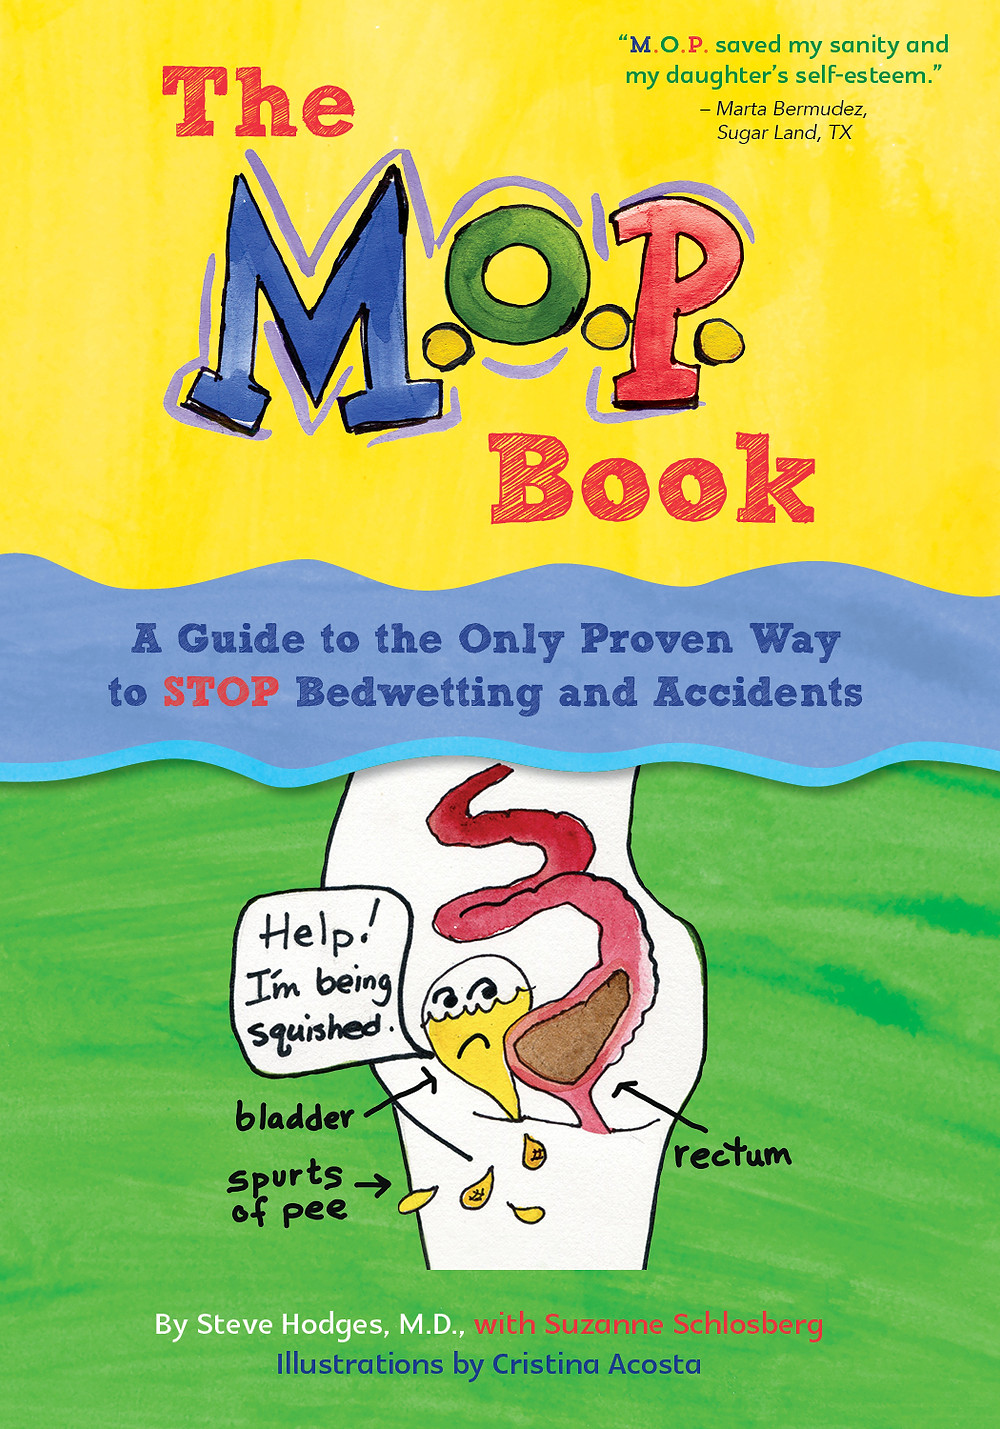 The M.O.P. Book for bedwetting